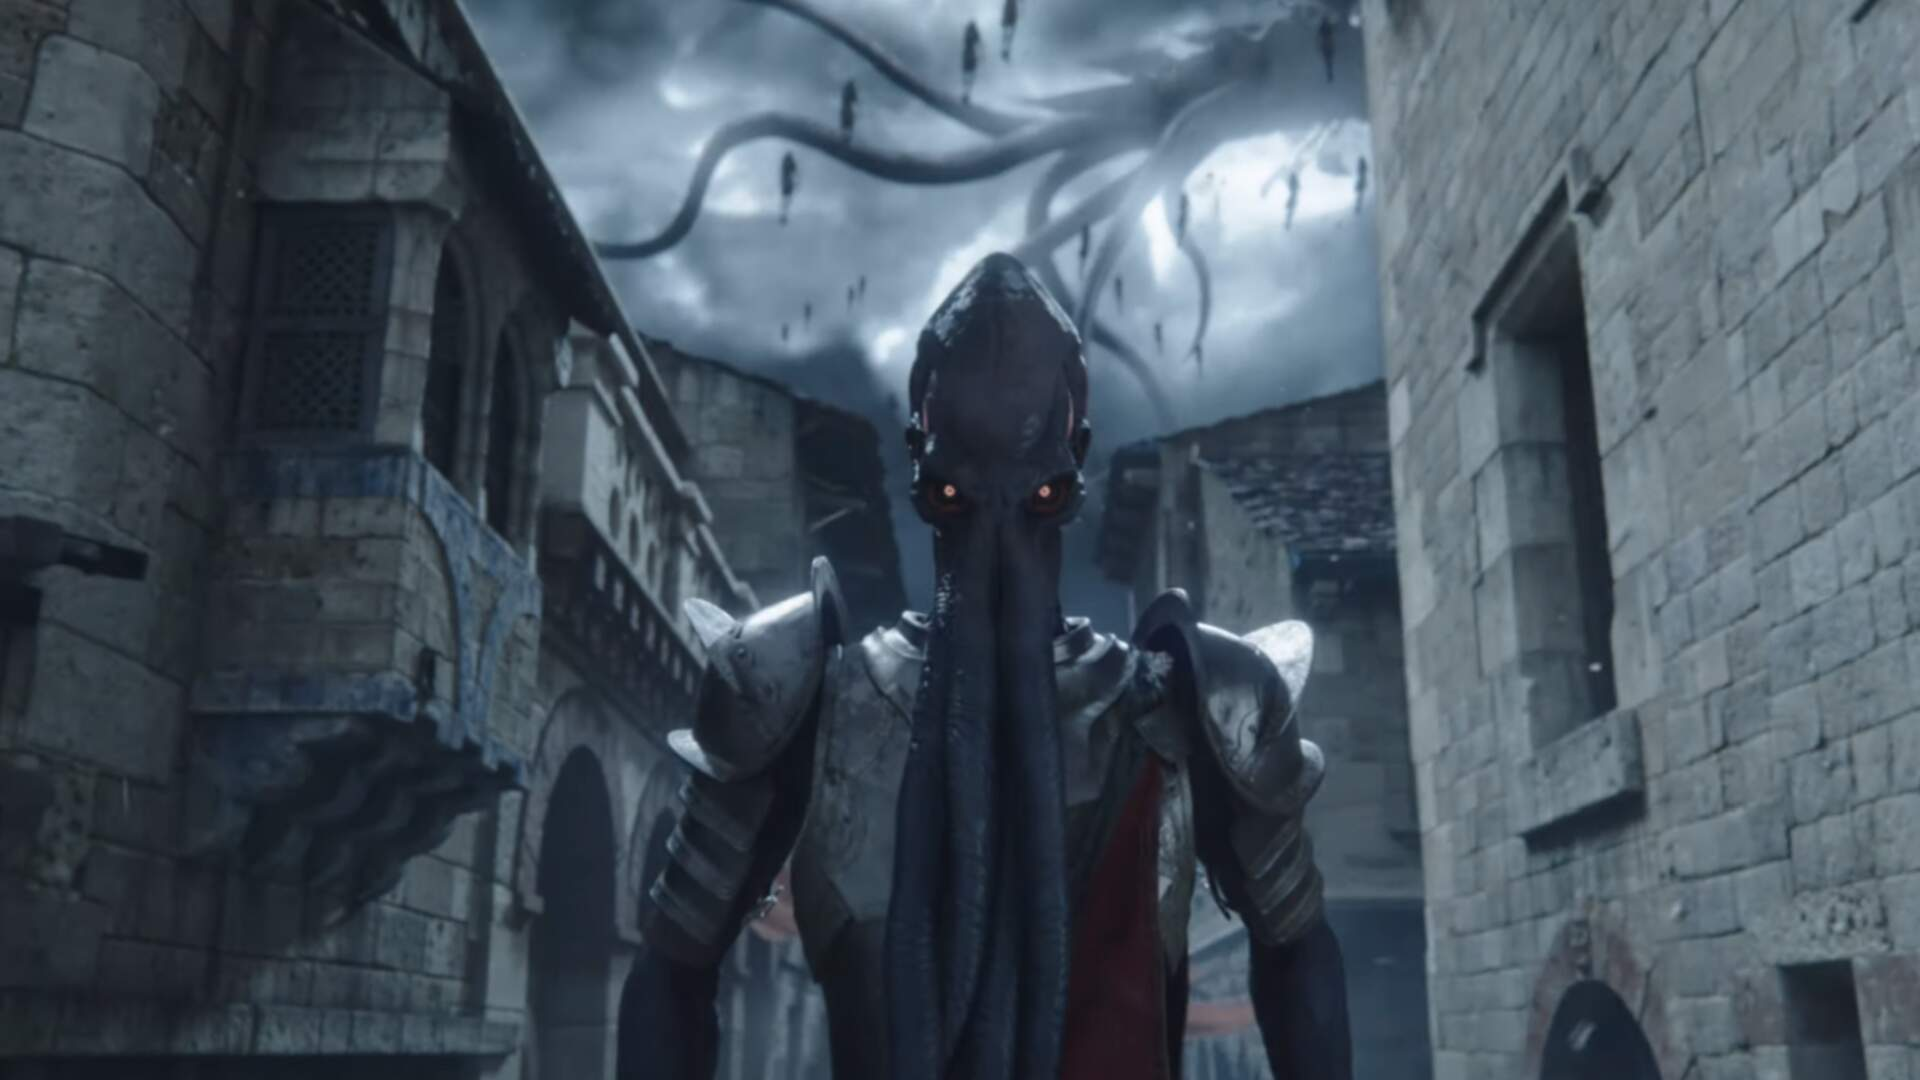 We'll Be Getting Our First Look at Baldur's Gate 3 Gameplay Very Soon